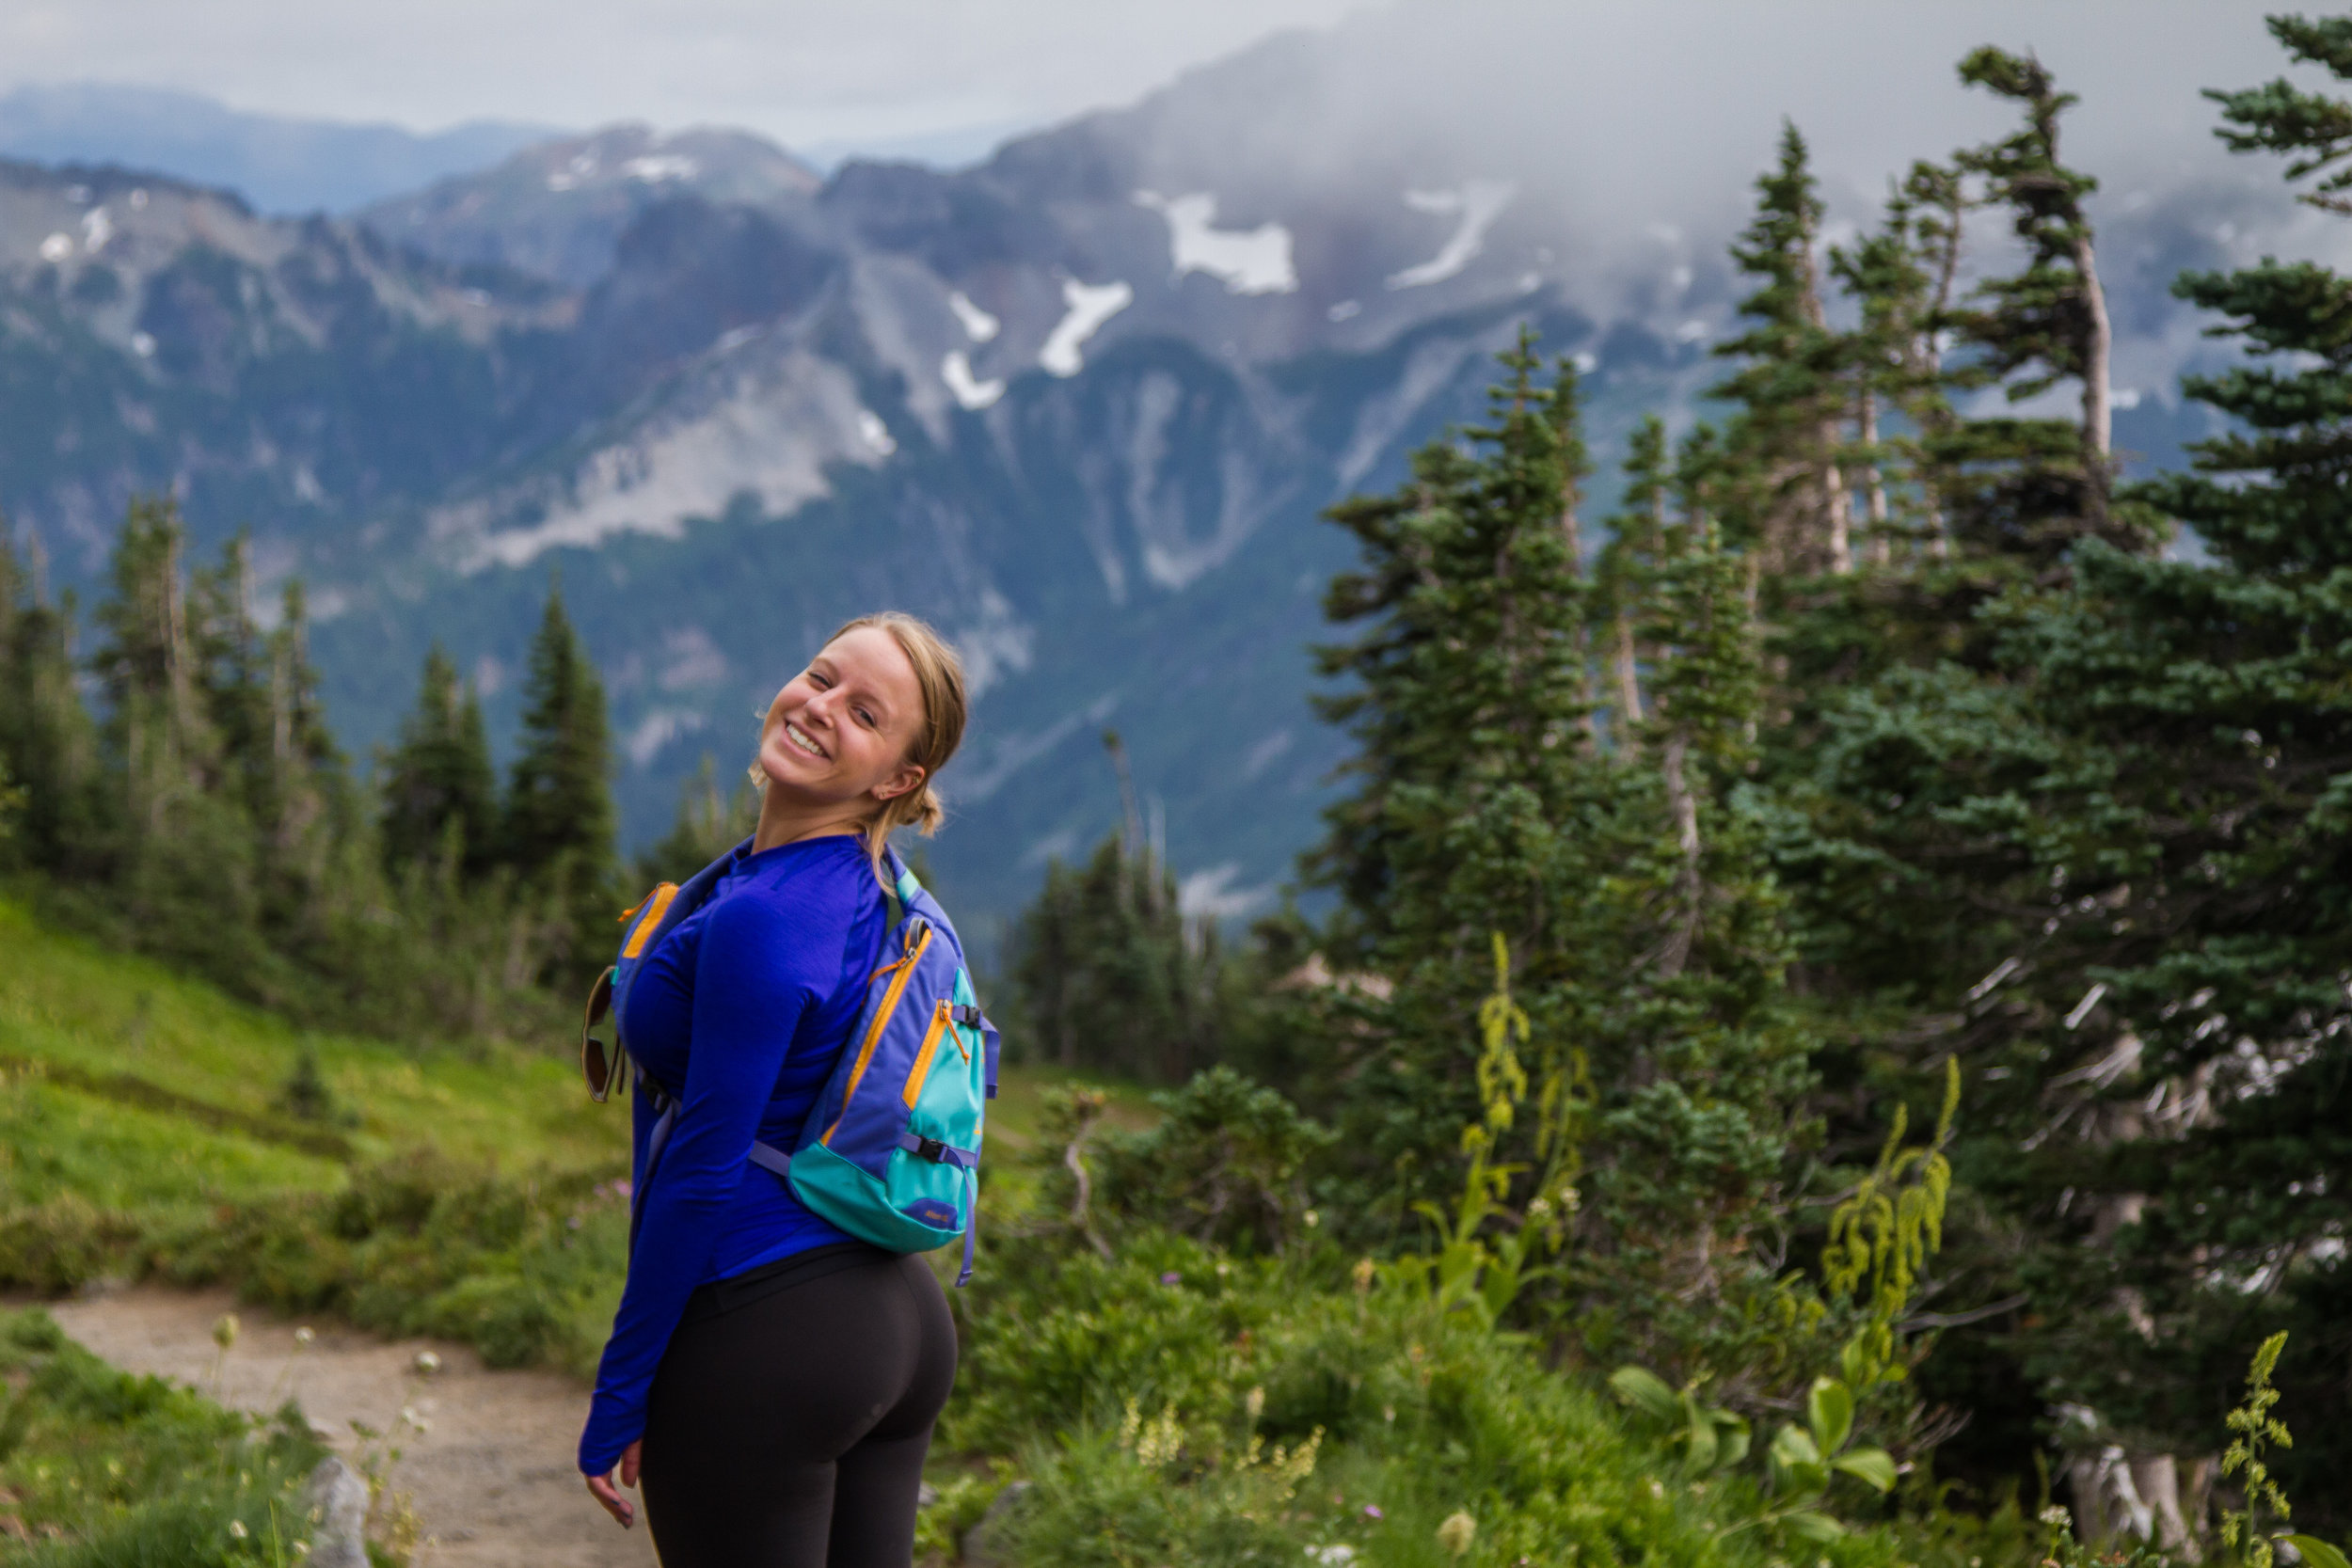 Friend, Amelia Brown, with a look of pure joy that can only come from spending a day in alpine Paradise. © Kelly Compton